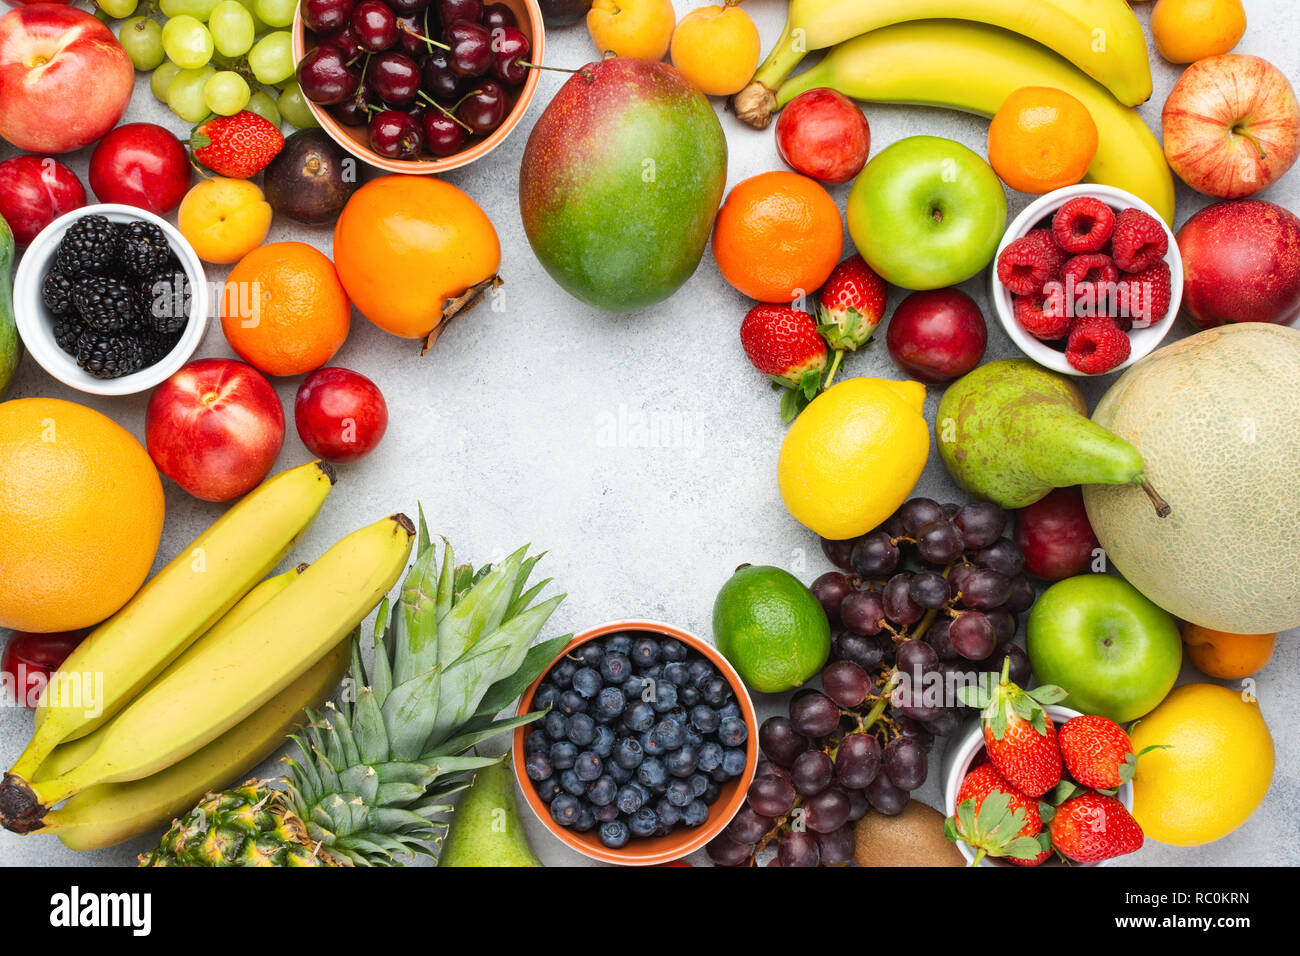 Healthy fruit background frame, strawberries raspberries oranges plums apples kiwis grapes blueberries mango persimmon on the white table - Stock Image